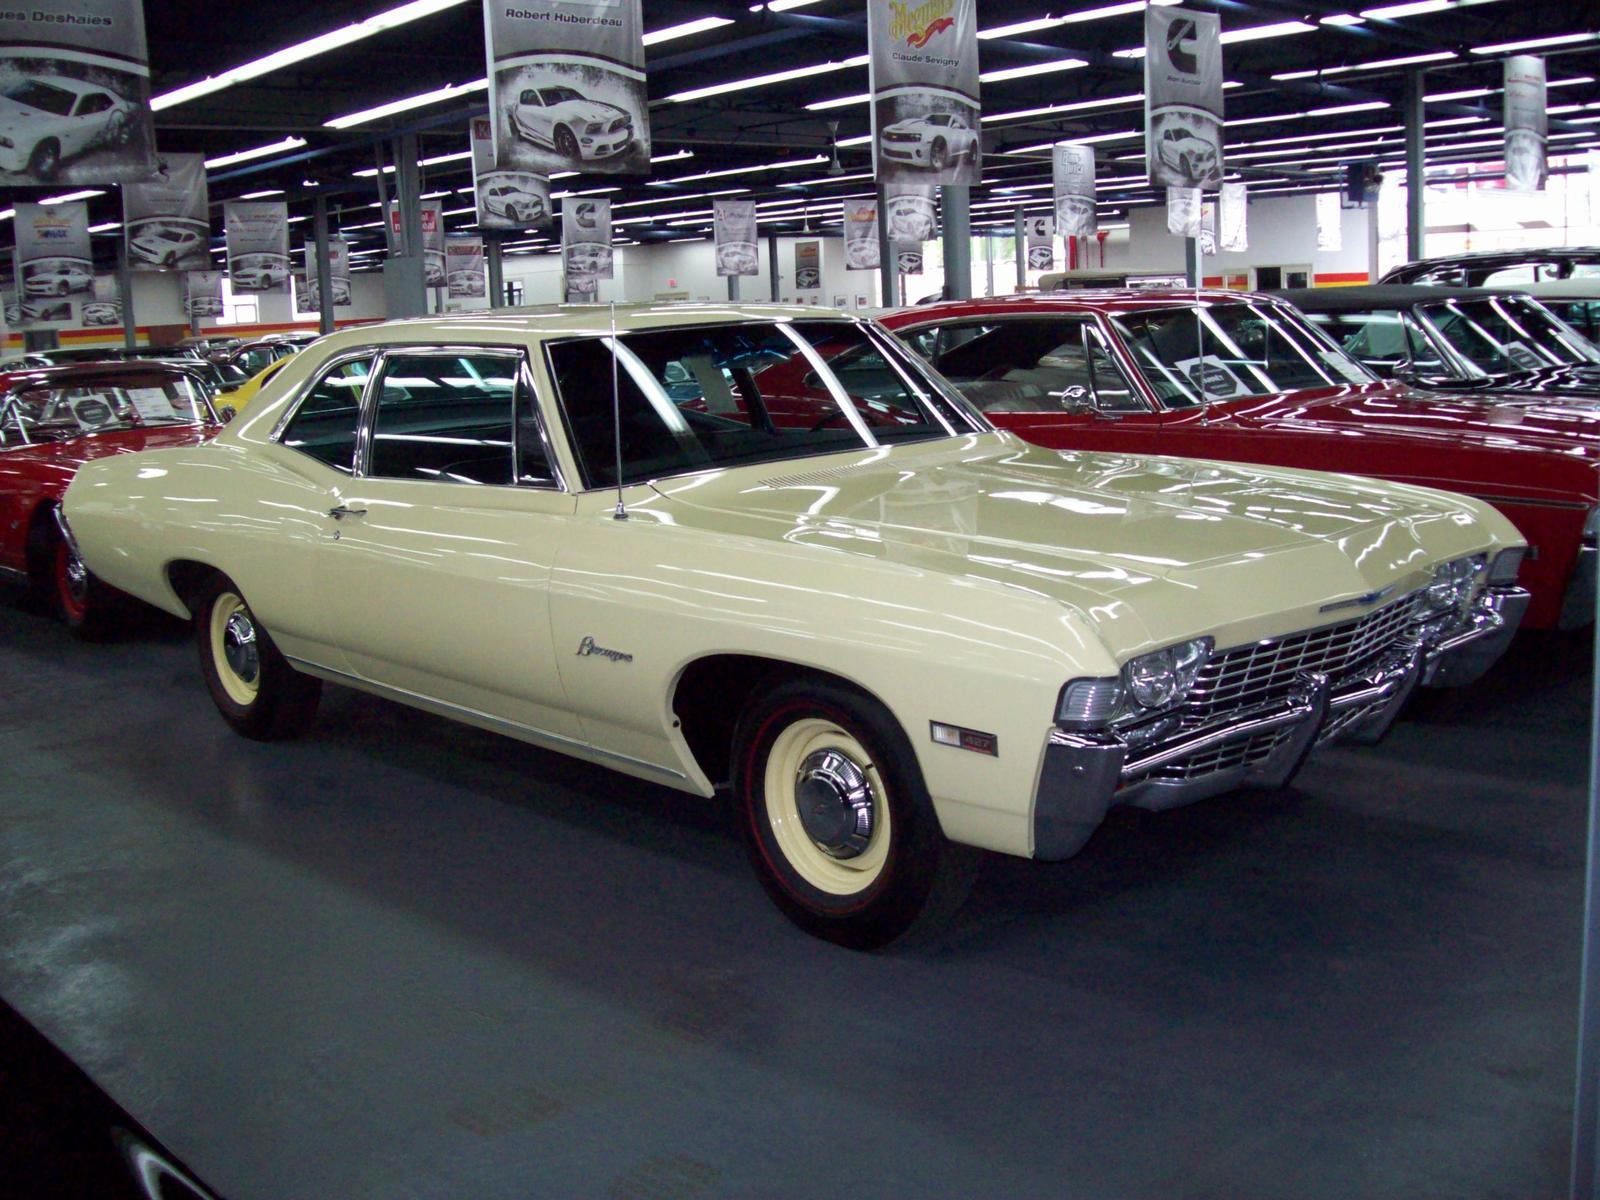 Used 1968 Chevrolet Biscayne For Sale In Saint Lonard John Scotti Impala 2 Door Classic Cars H1r 2y7 2070800